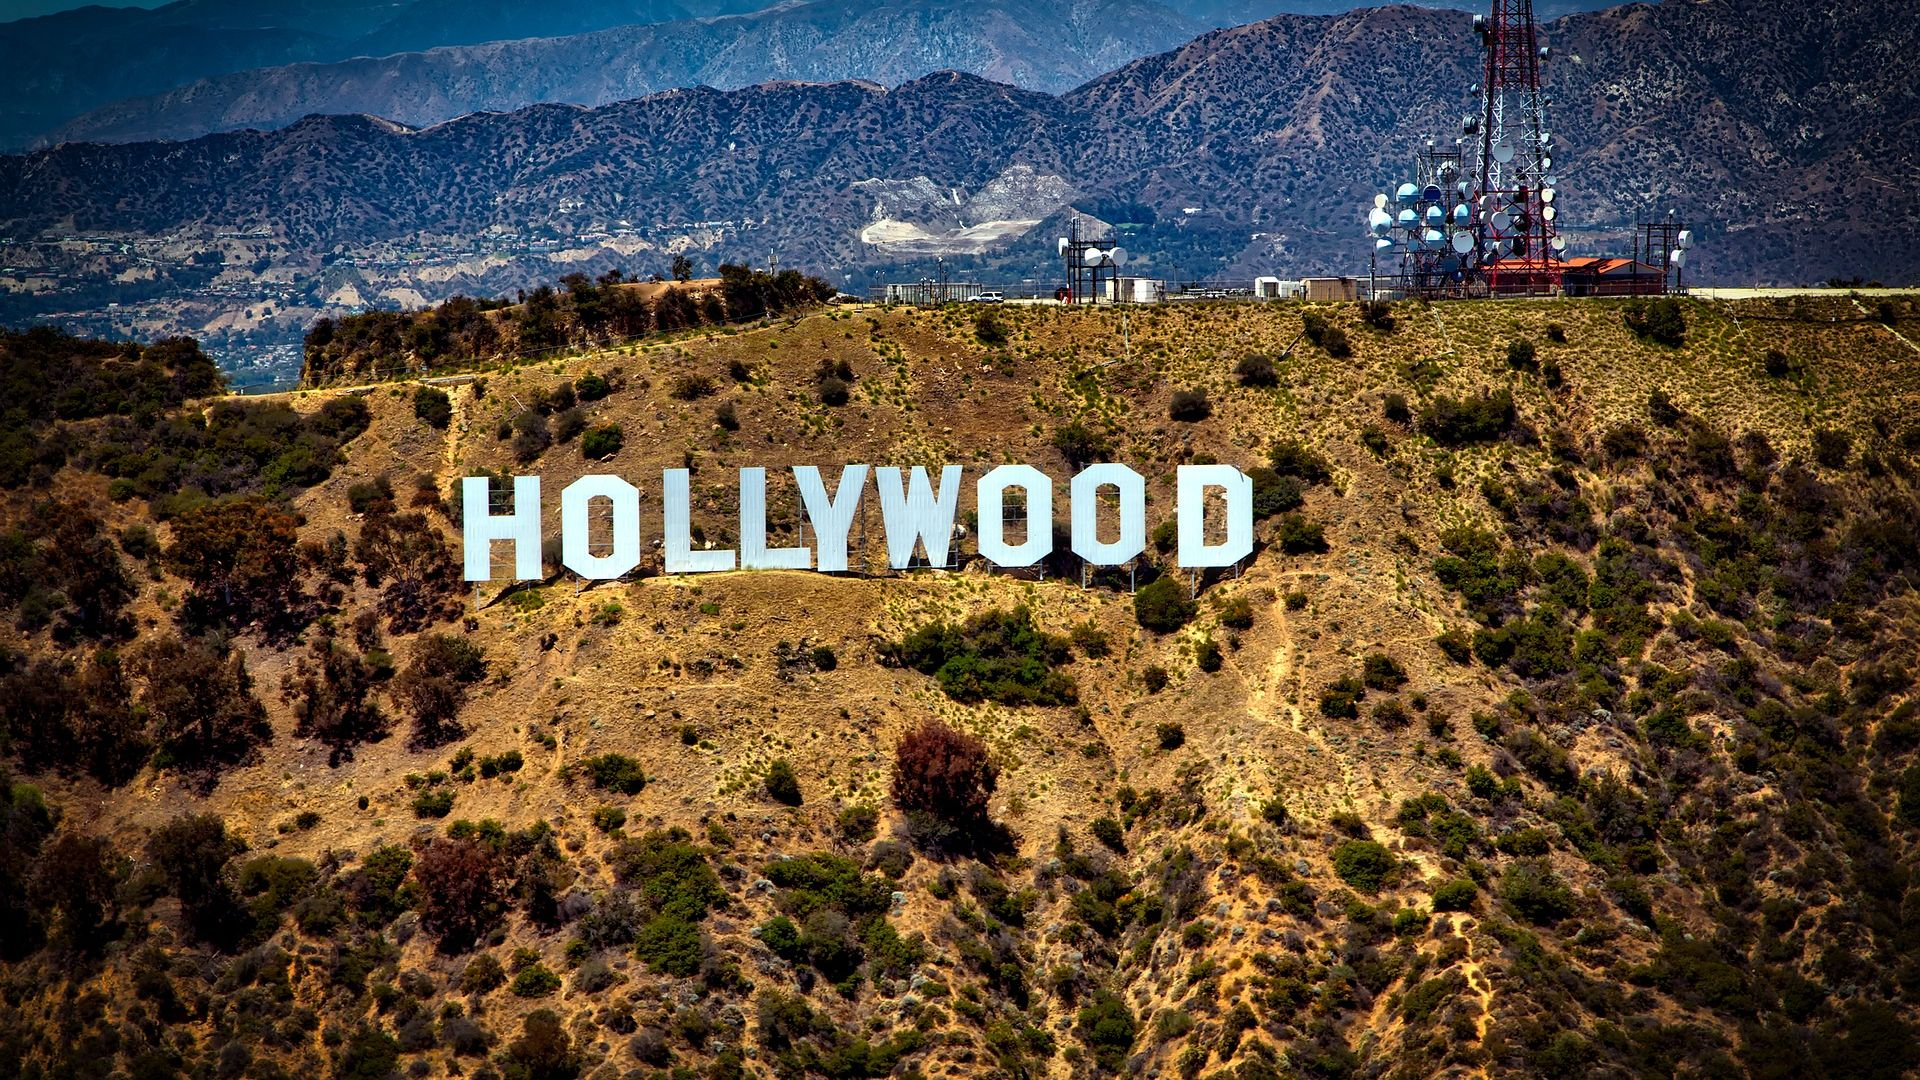 Hollywood Sign Los Angeles - Los Angeles , HD Wallpaper & Backgrounds